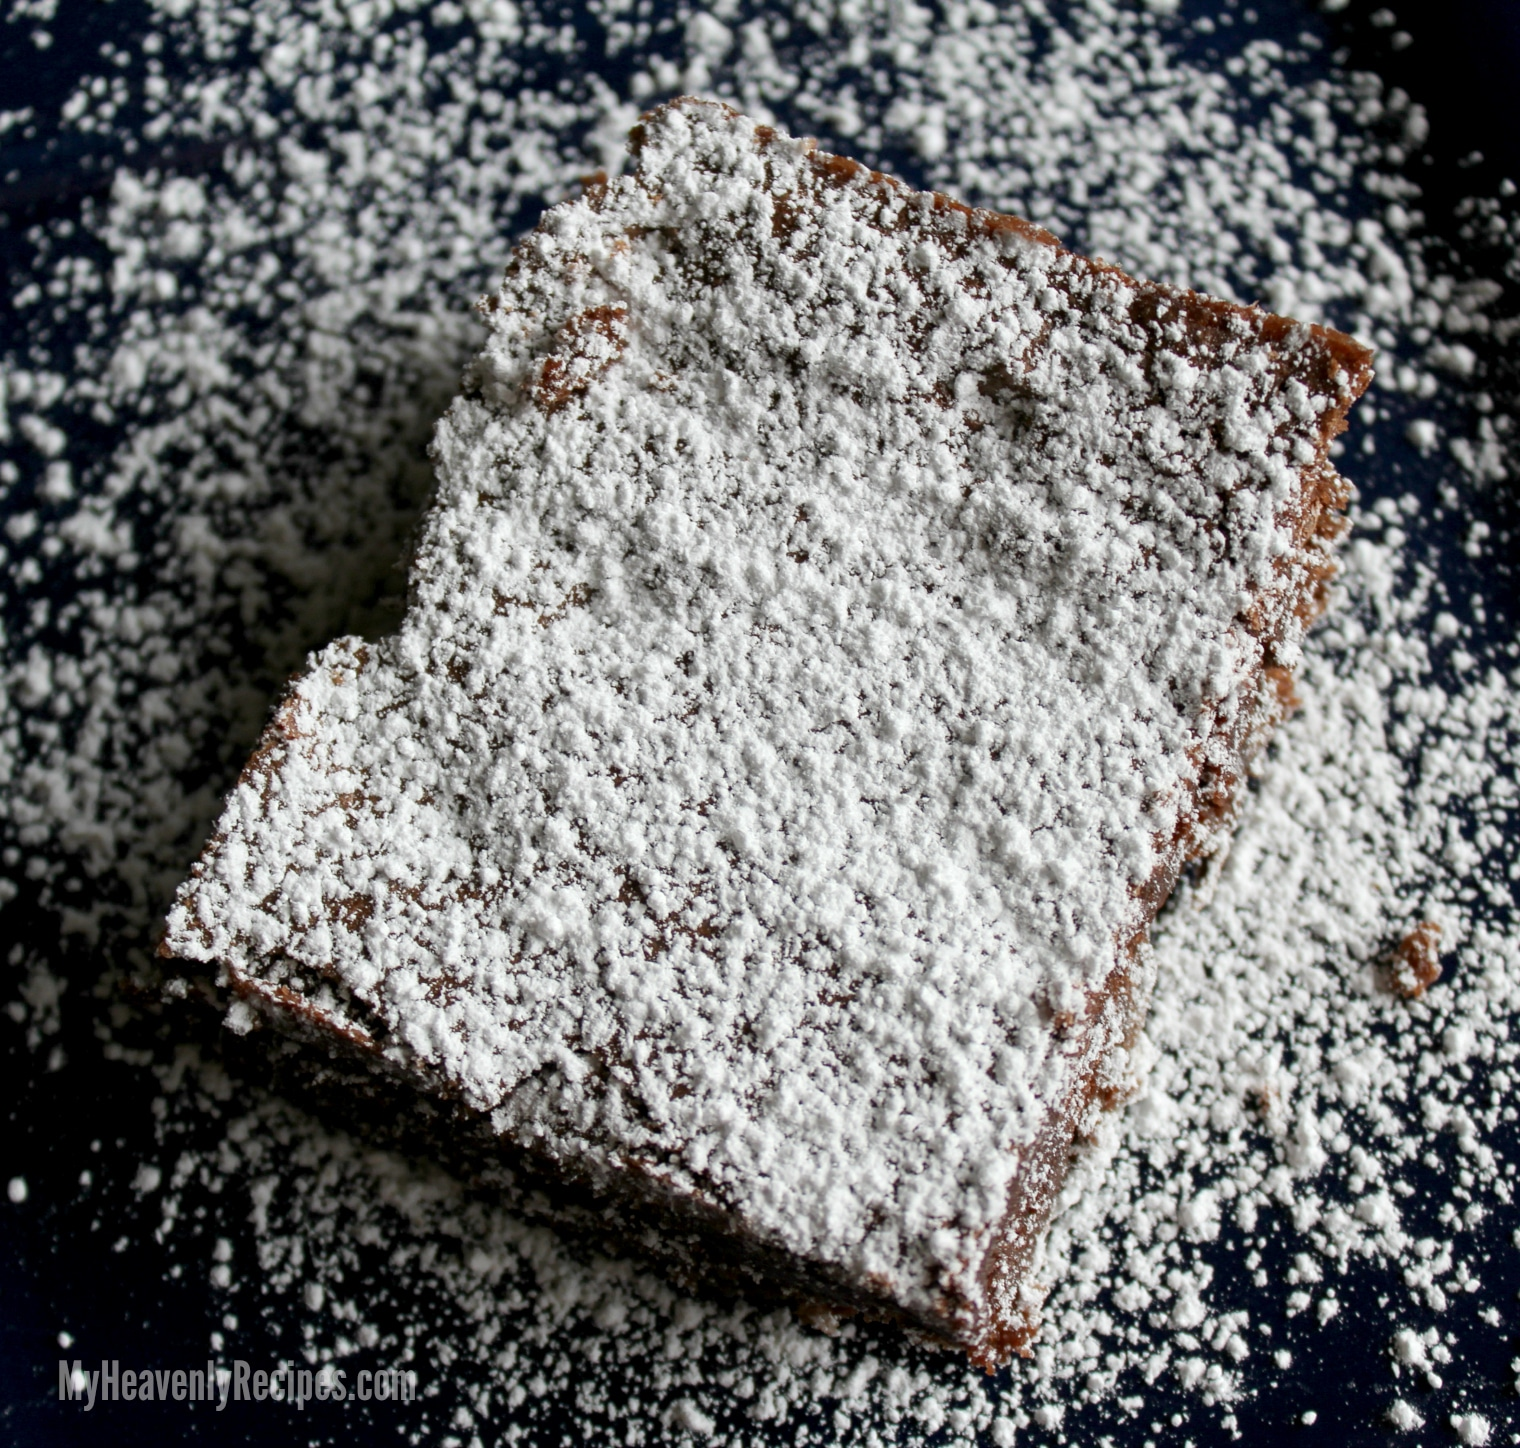 homemade brownie dusted with powdered sugar